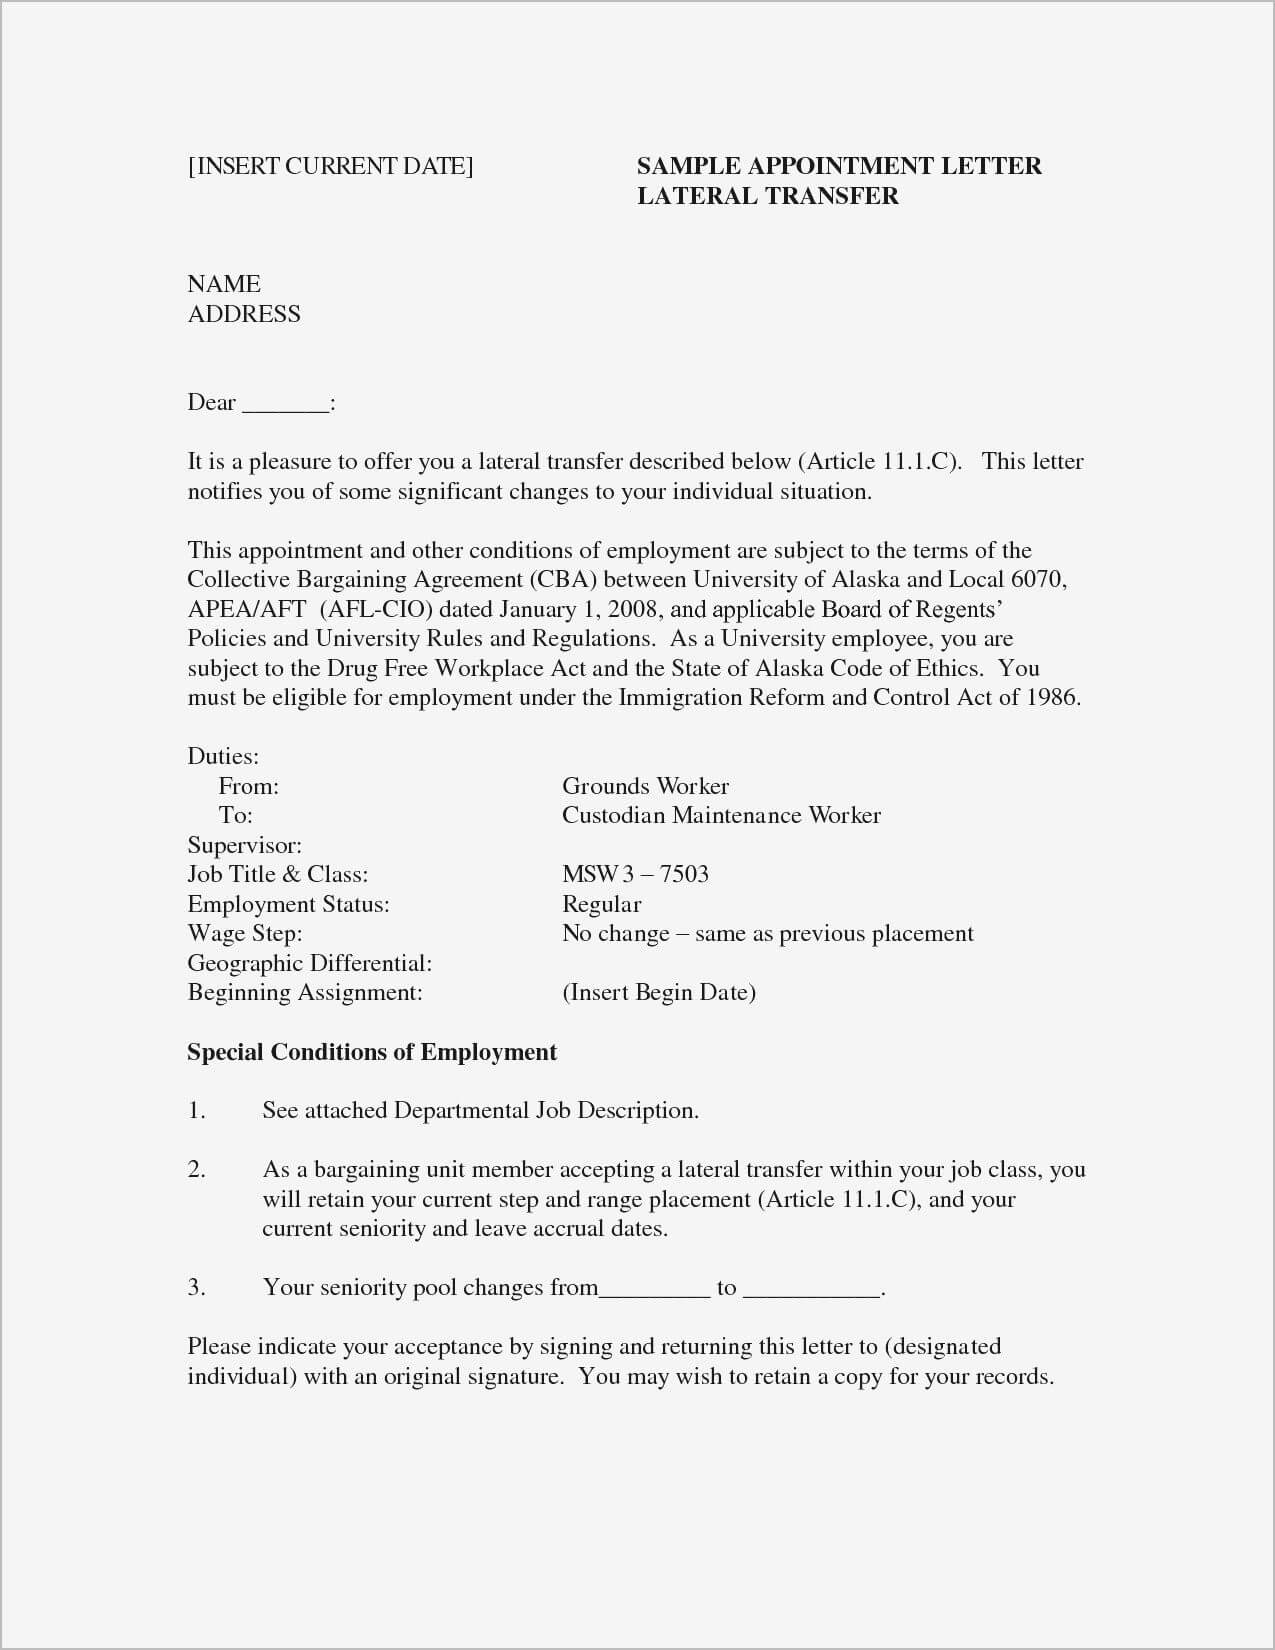 Credit Repair Letter Free 609 Template - Carlynstudio For 609 Letter Template Free